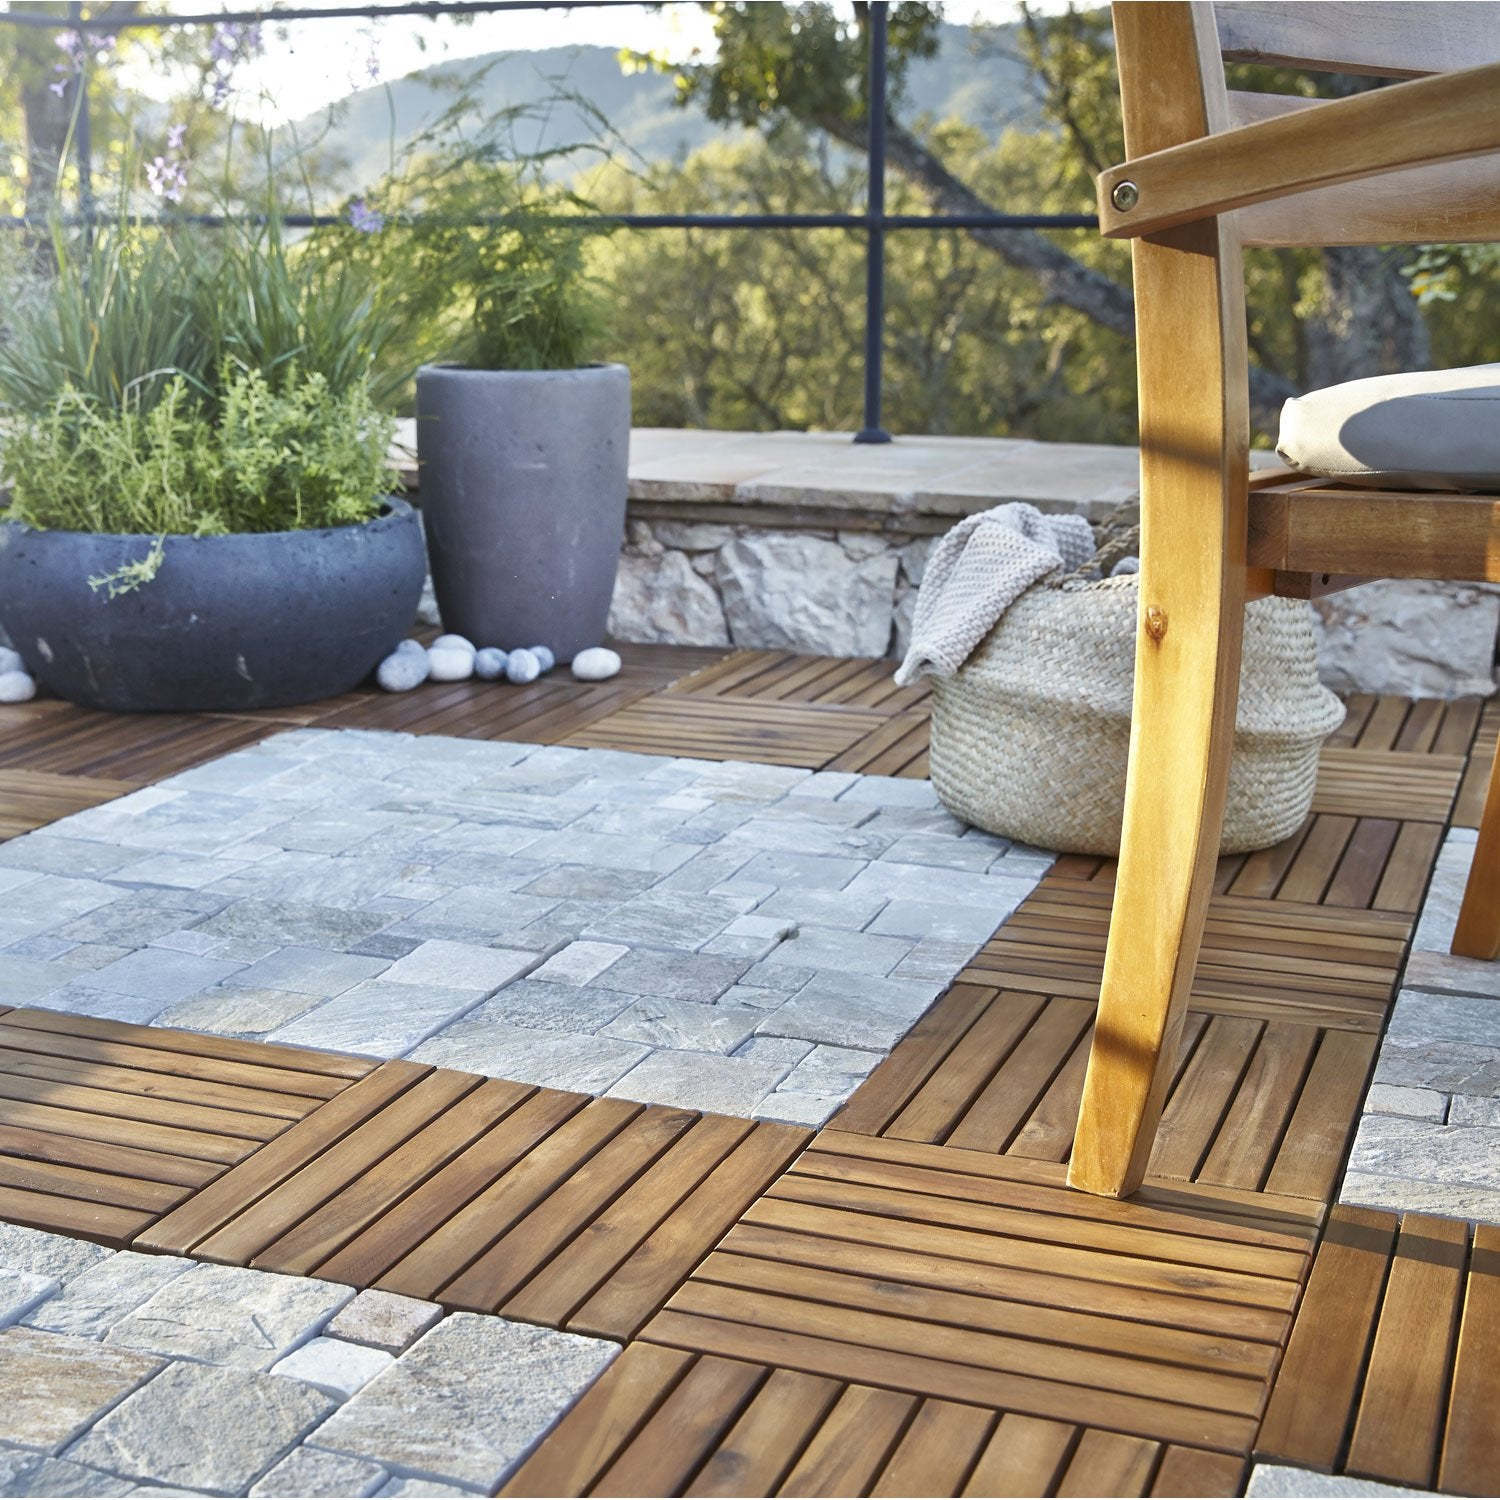 Dalle clipsable bois marron naturel x cm x mm leroy merlin - Dalle terrasse composite 50x50 ...